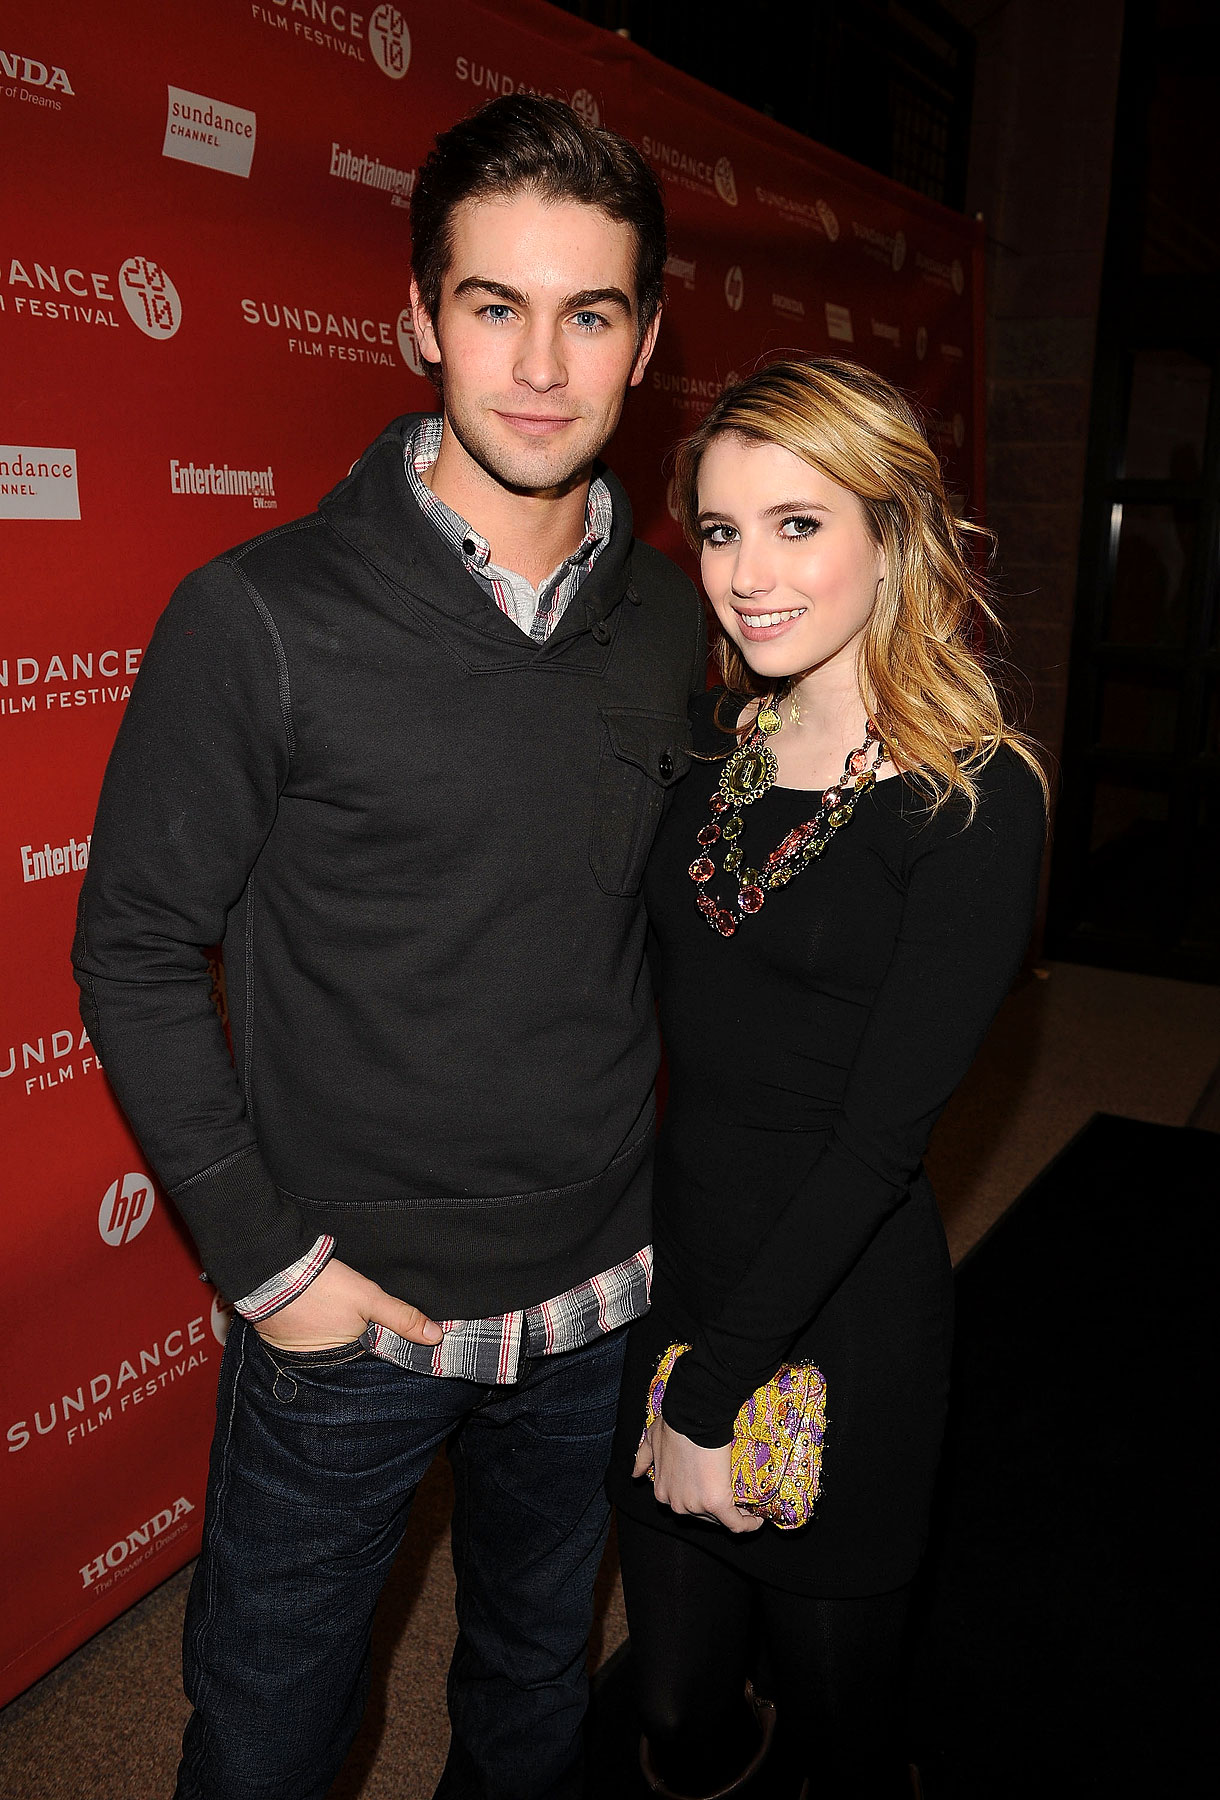 Chace Crawford & Emma Roberts Do Sundance (PHOTOS)